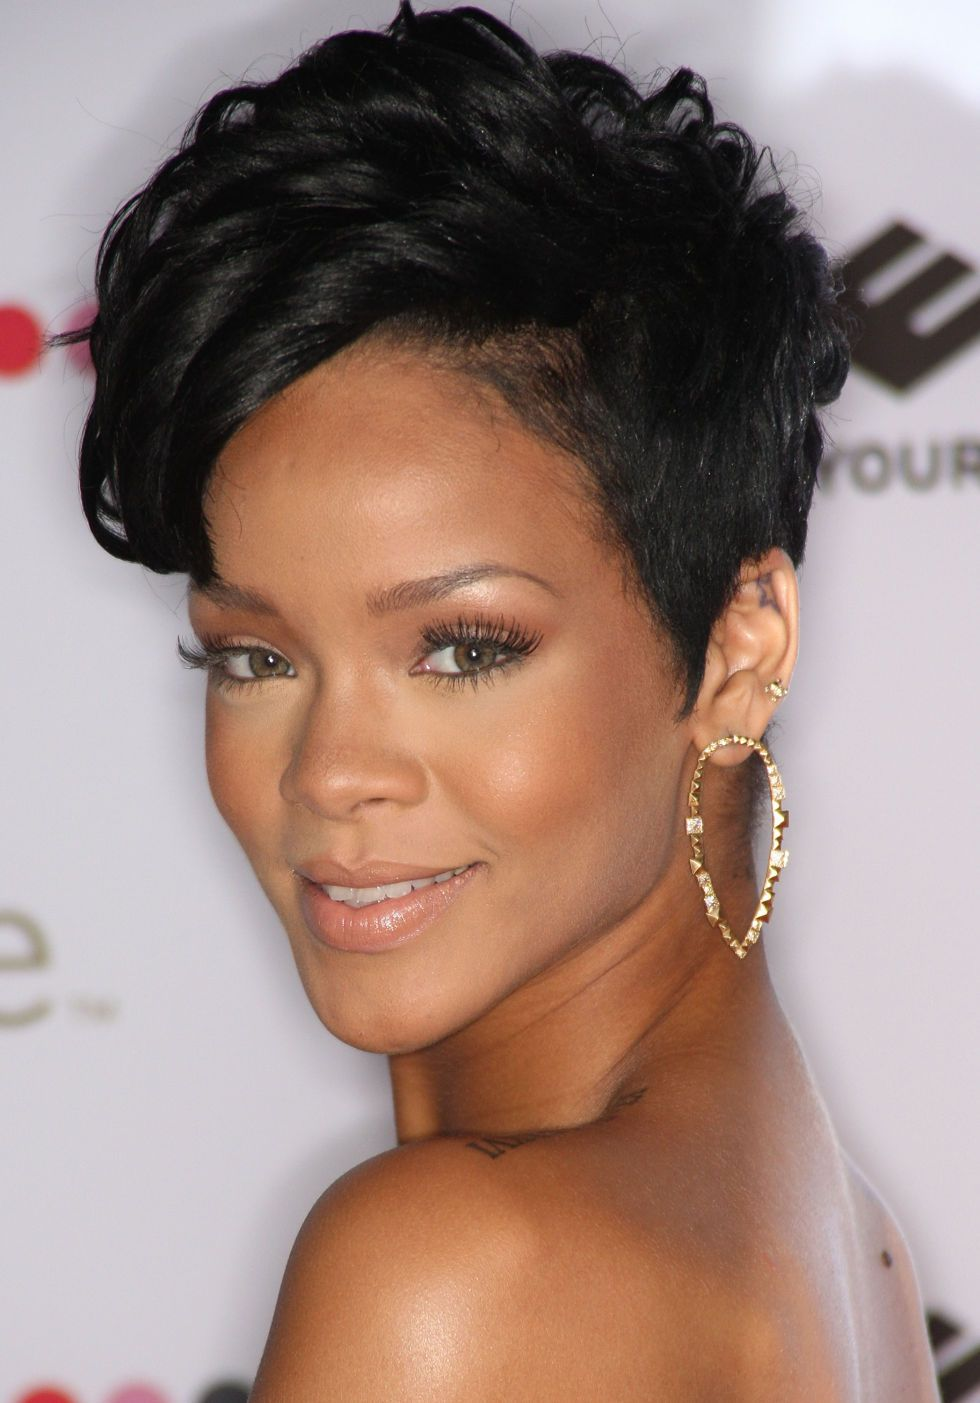 Rihanna Hairstyles Fair A Complete Guide To All Of Rihanna's Hairstyles  Hair  Pinterest